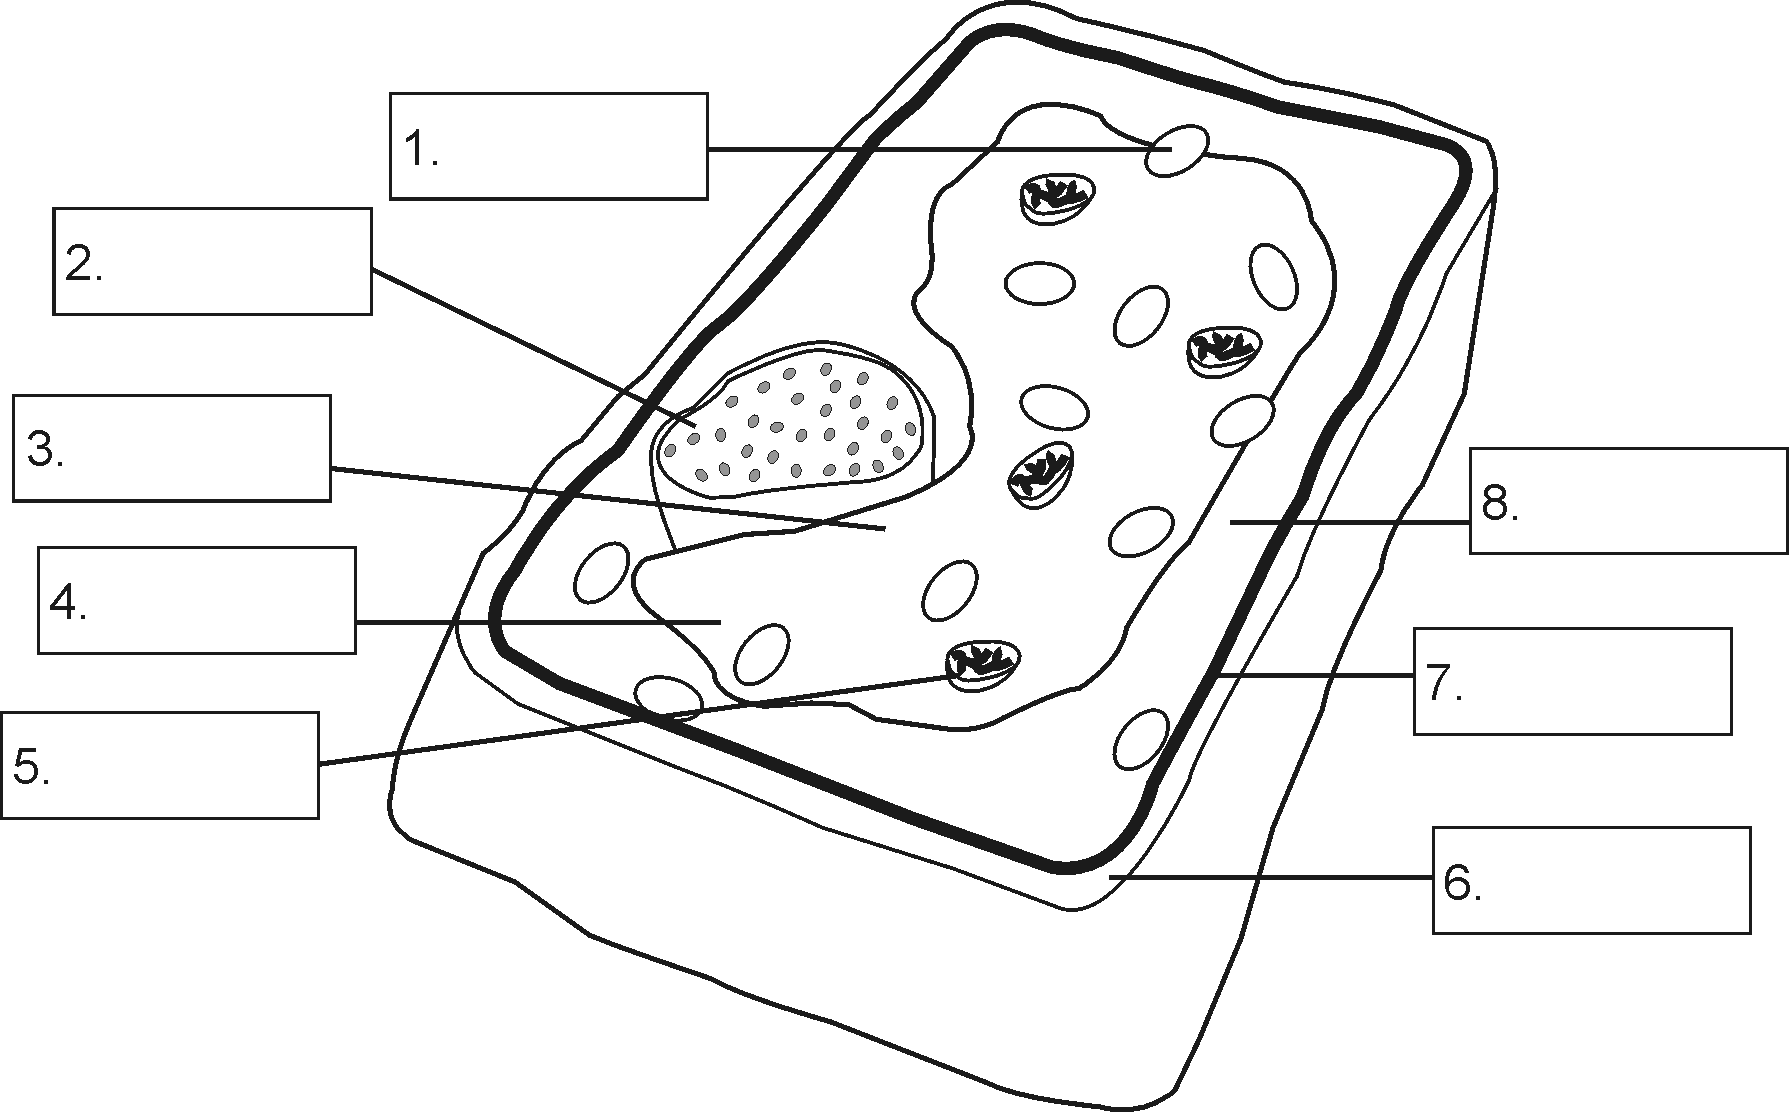 Plant Cell Diagram For Kids No Labels Plant Cell - Wiring Diagram Name